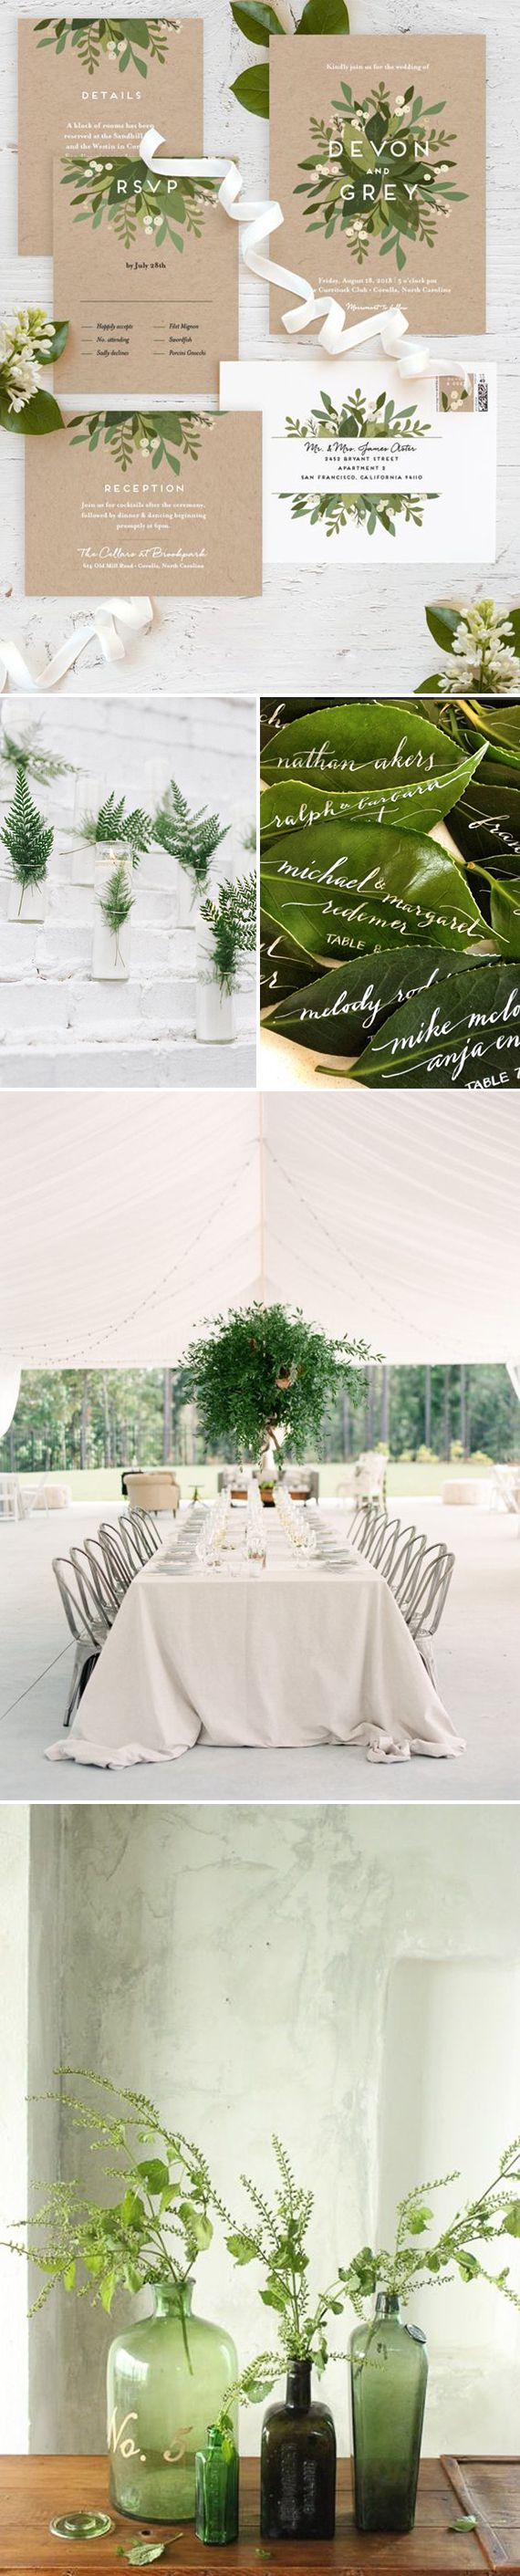 """Wedding Inspiration: Pantone's Color of the Year """"Greenery"""""""